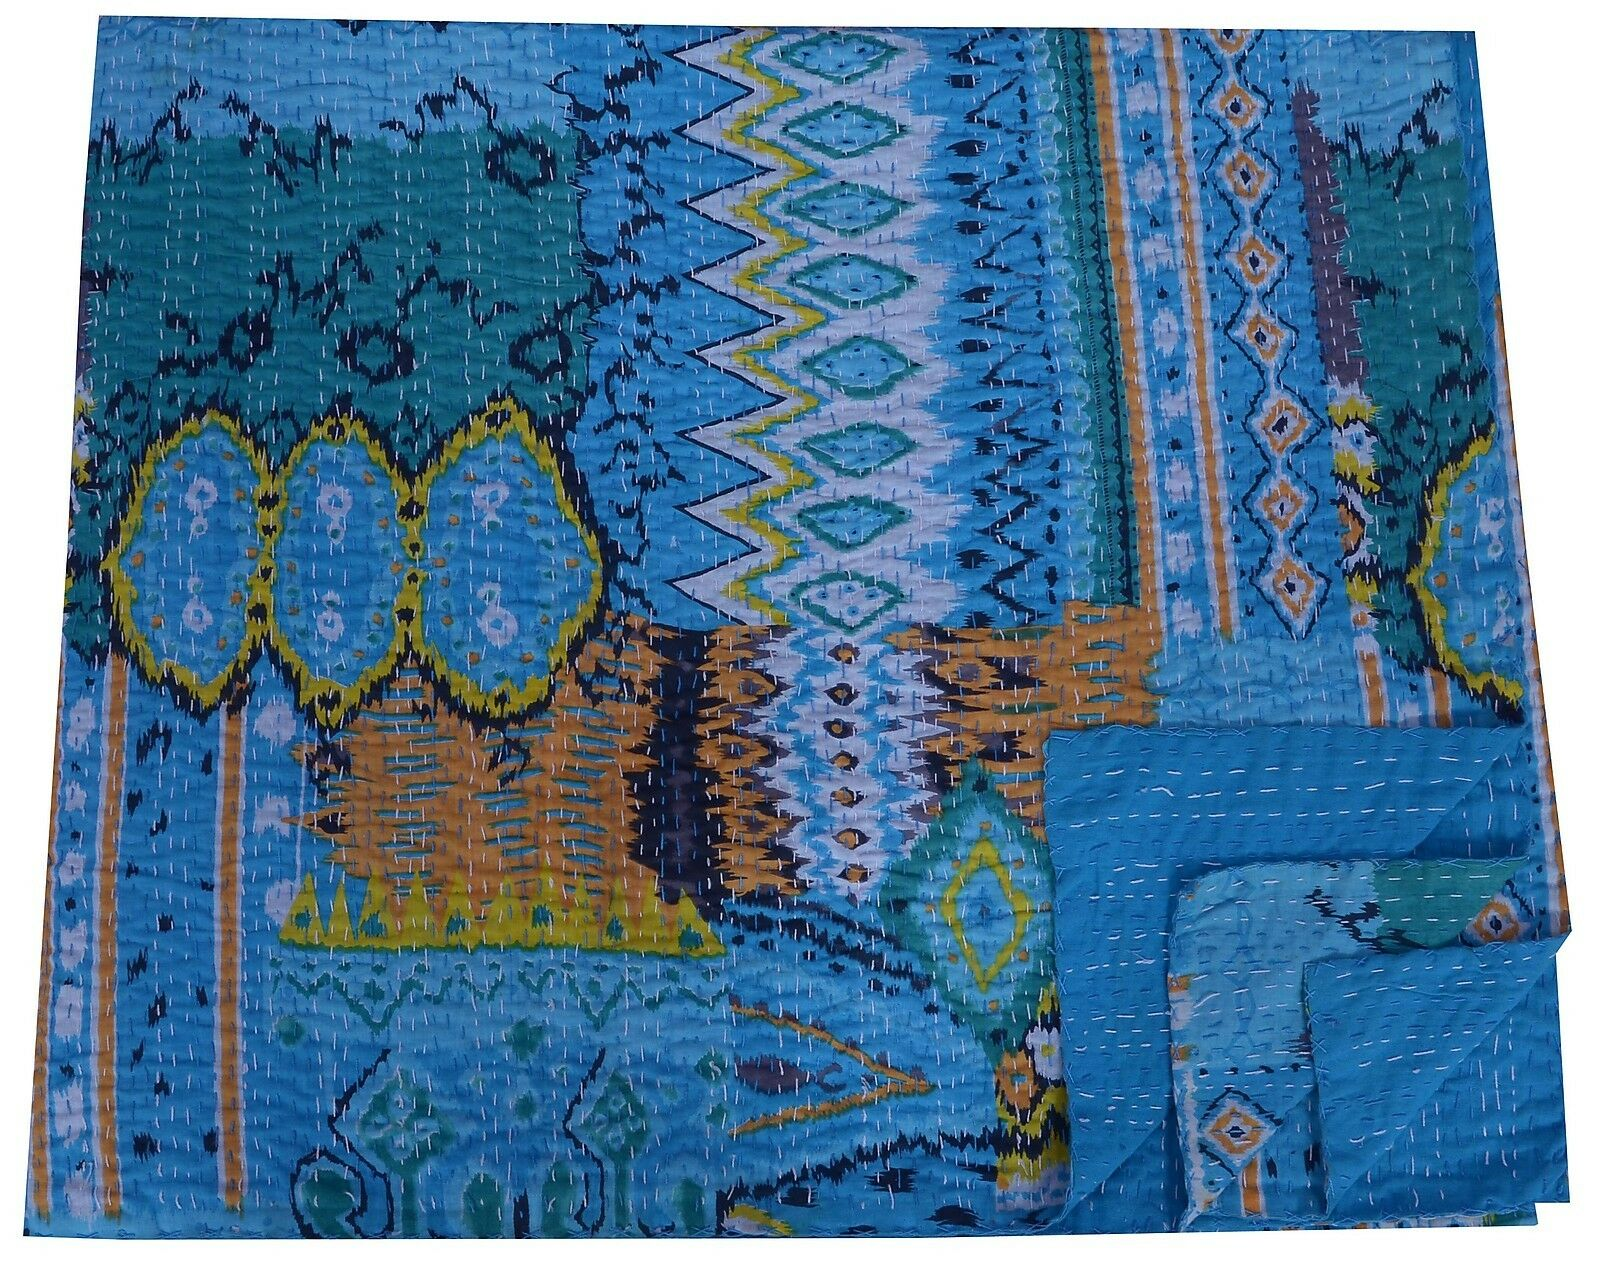 INDIAN QUEEN KANTHA QUILT IKAT DESIGN TURQUOISE BEDSPREAD THROW BEDDING BLANKET